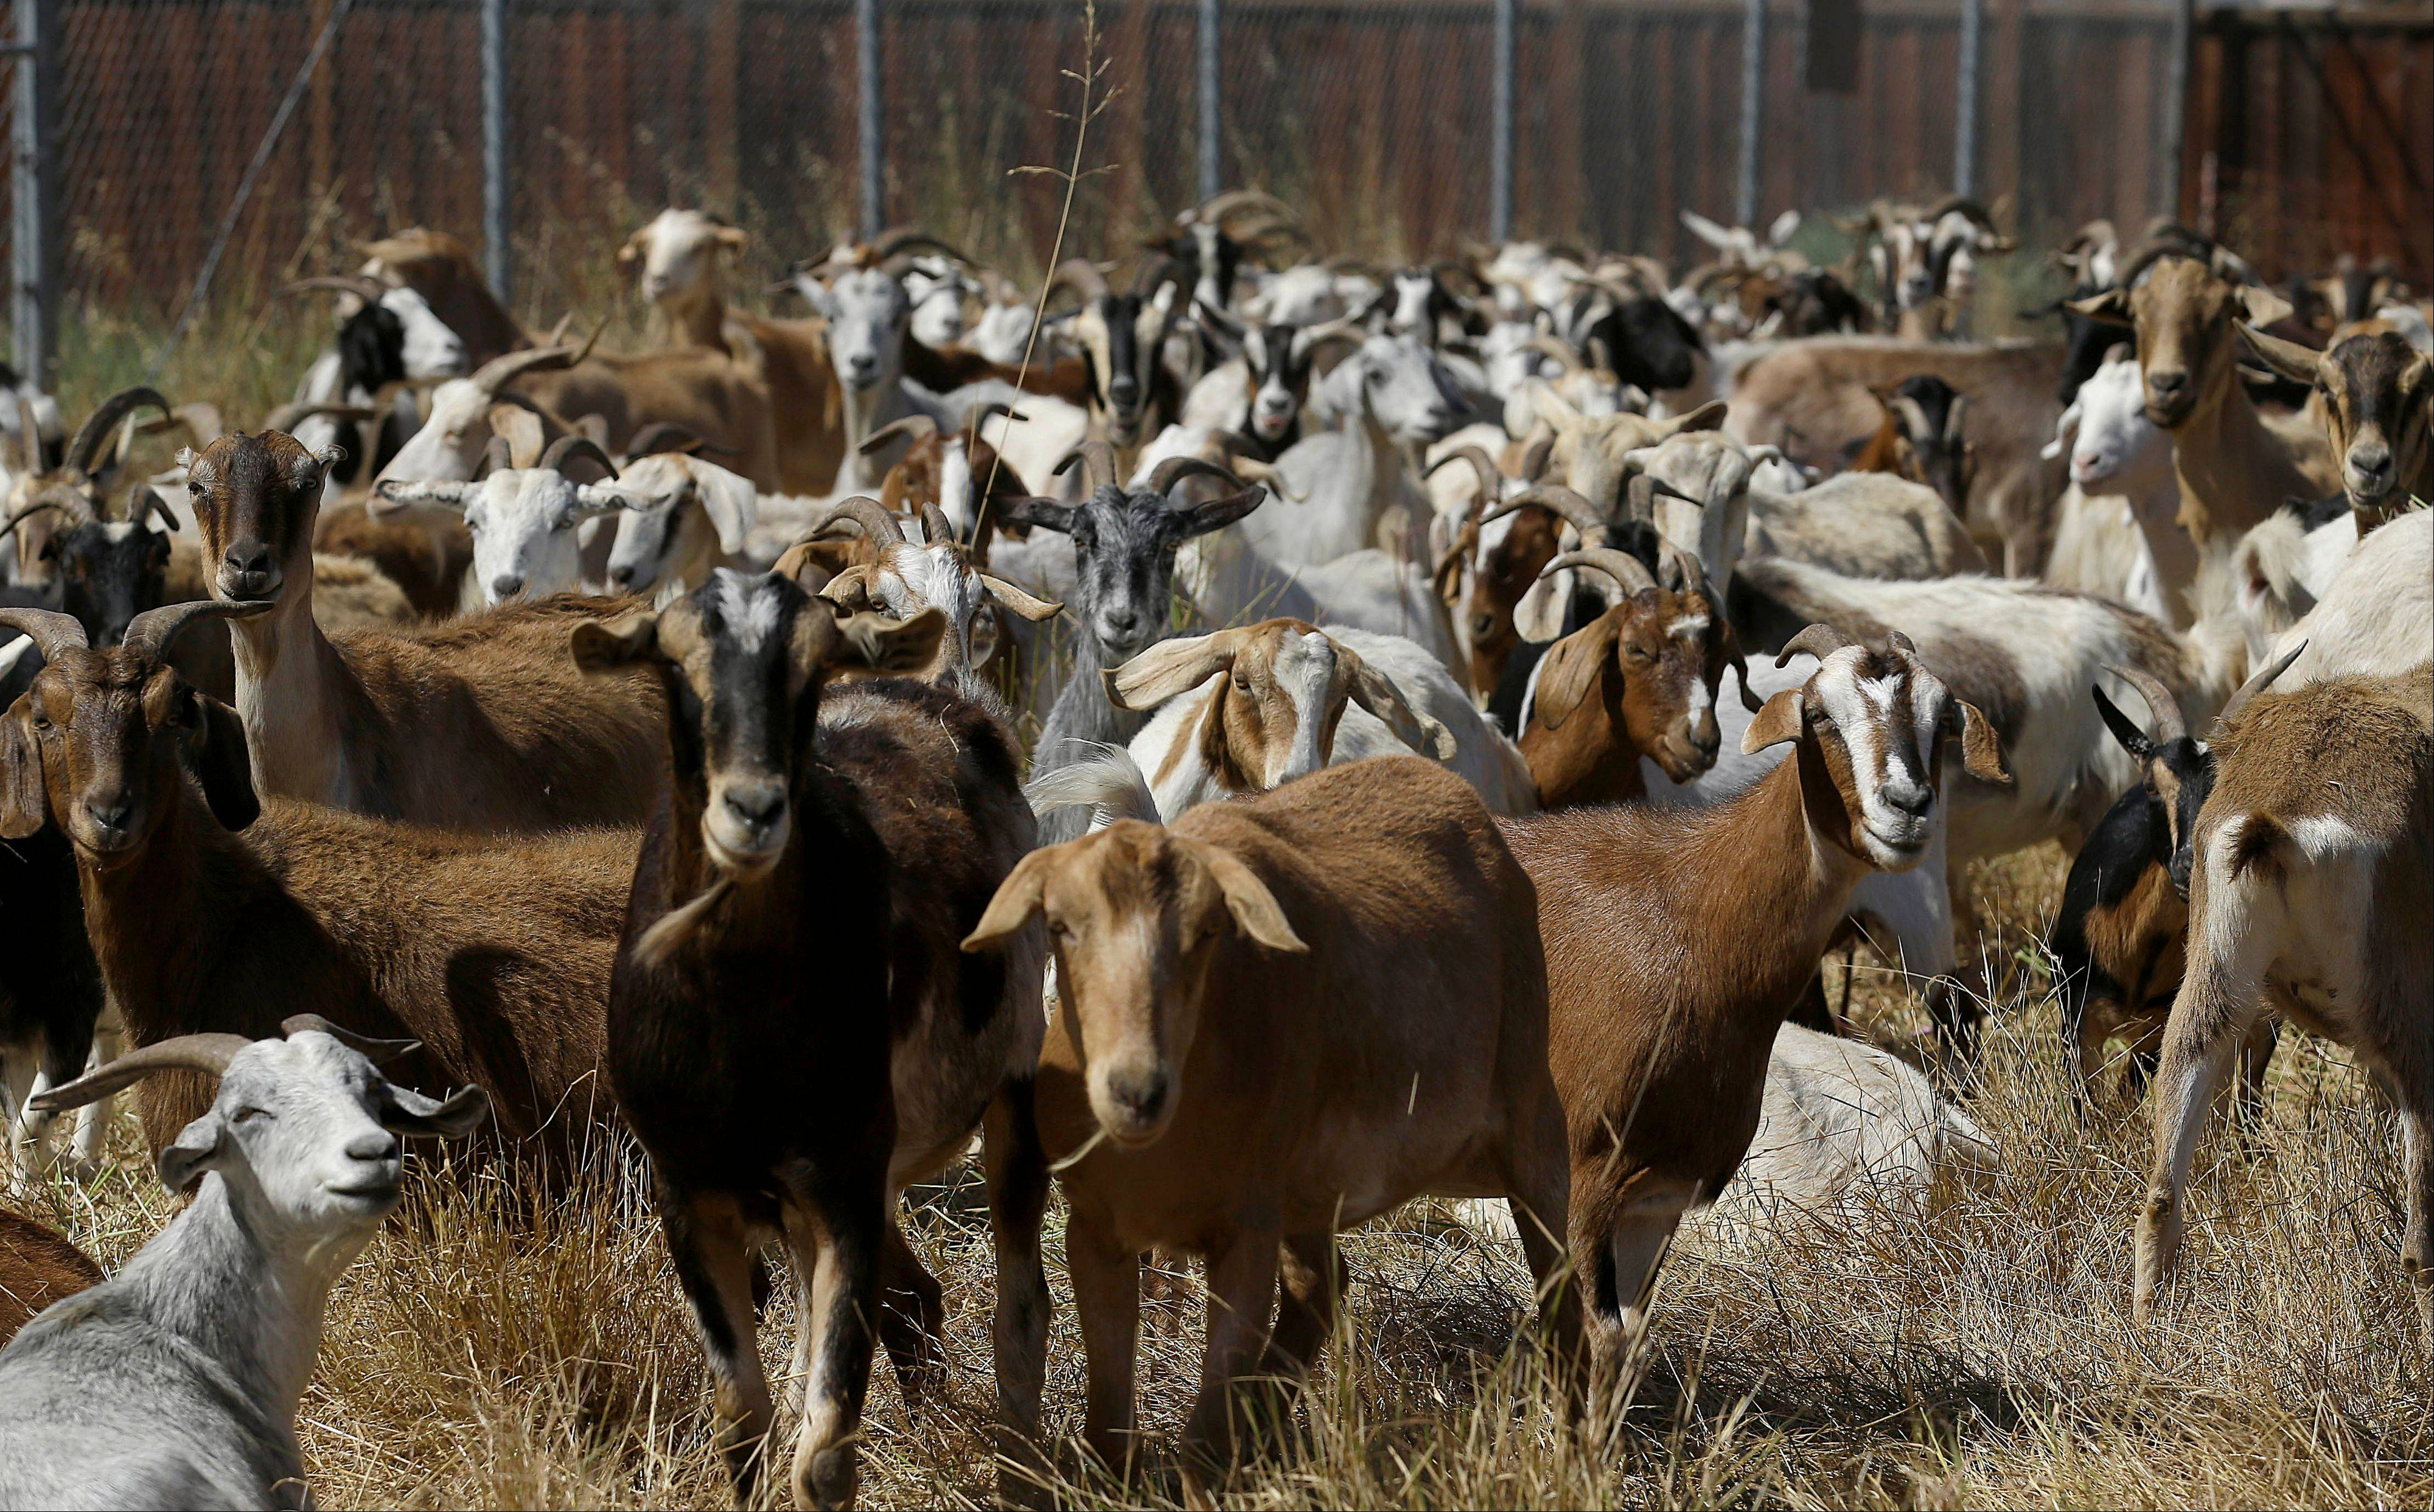 In this photo taken on Wednesday, June 19, 2013, goats graze on a patch of San Francisco International Airport land in San Francisco. San Francisco airport is using 400 goats to clear from an area of the airport prone to fire.